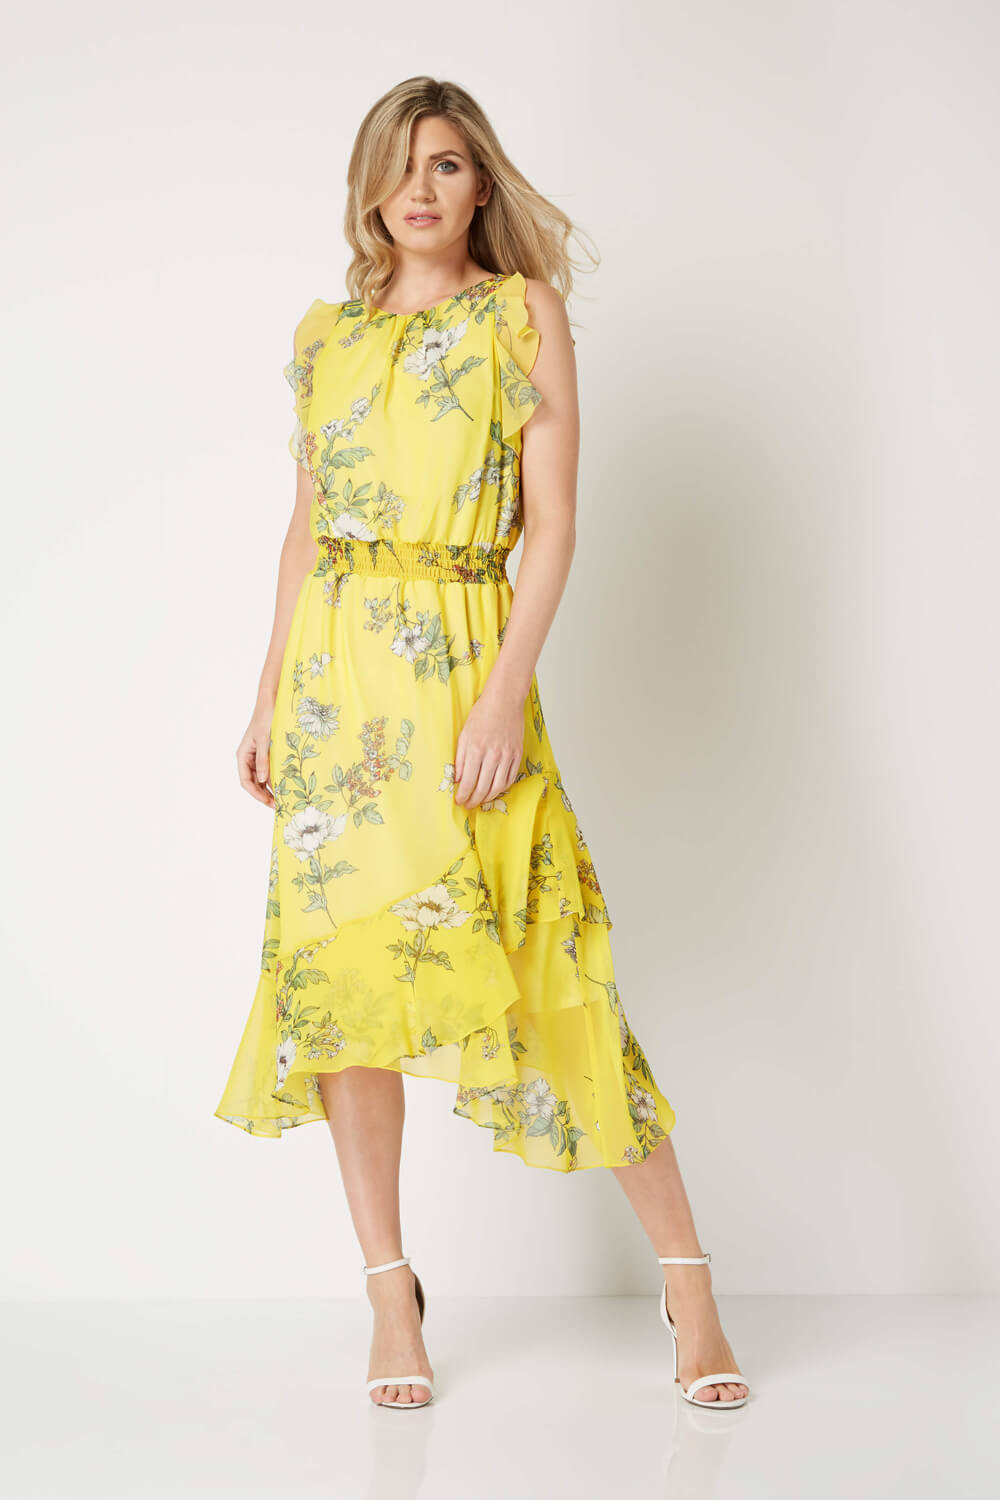 Roman Roman Roman Originals Women's Yellow Floral Frill Midi Dress 38e78d